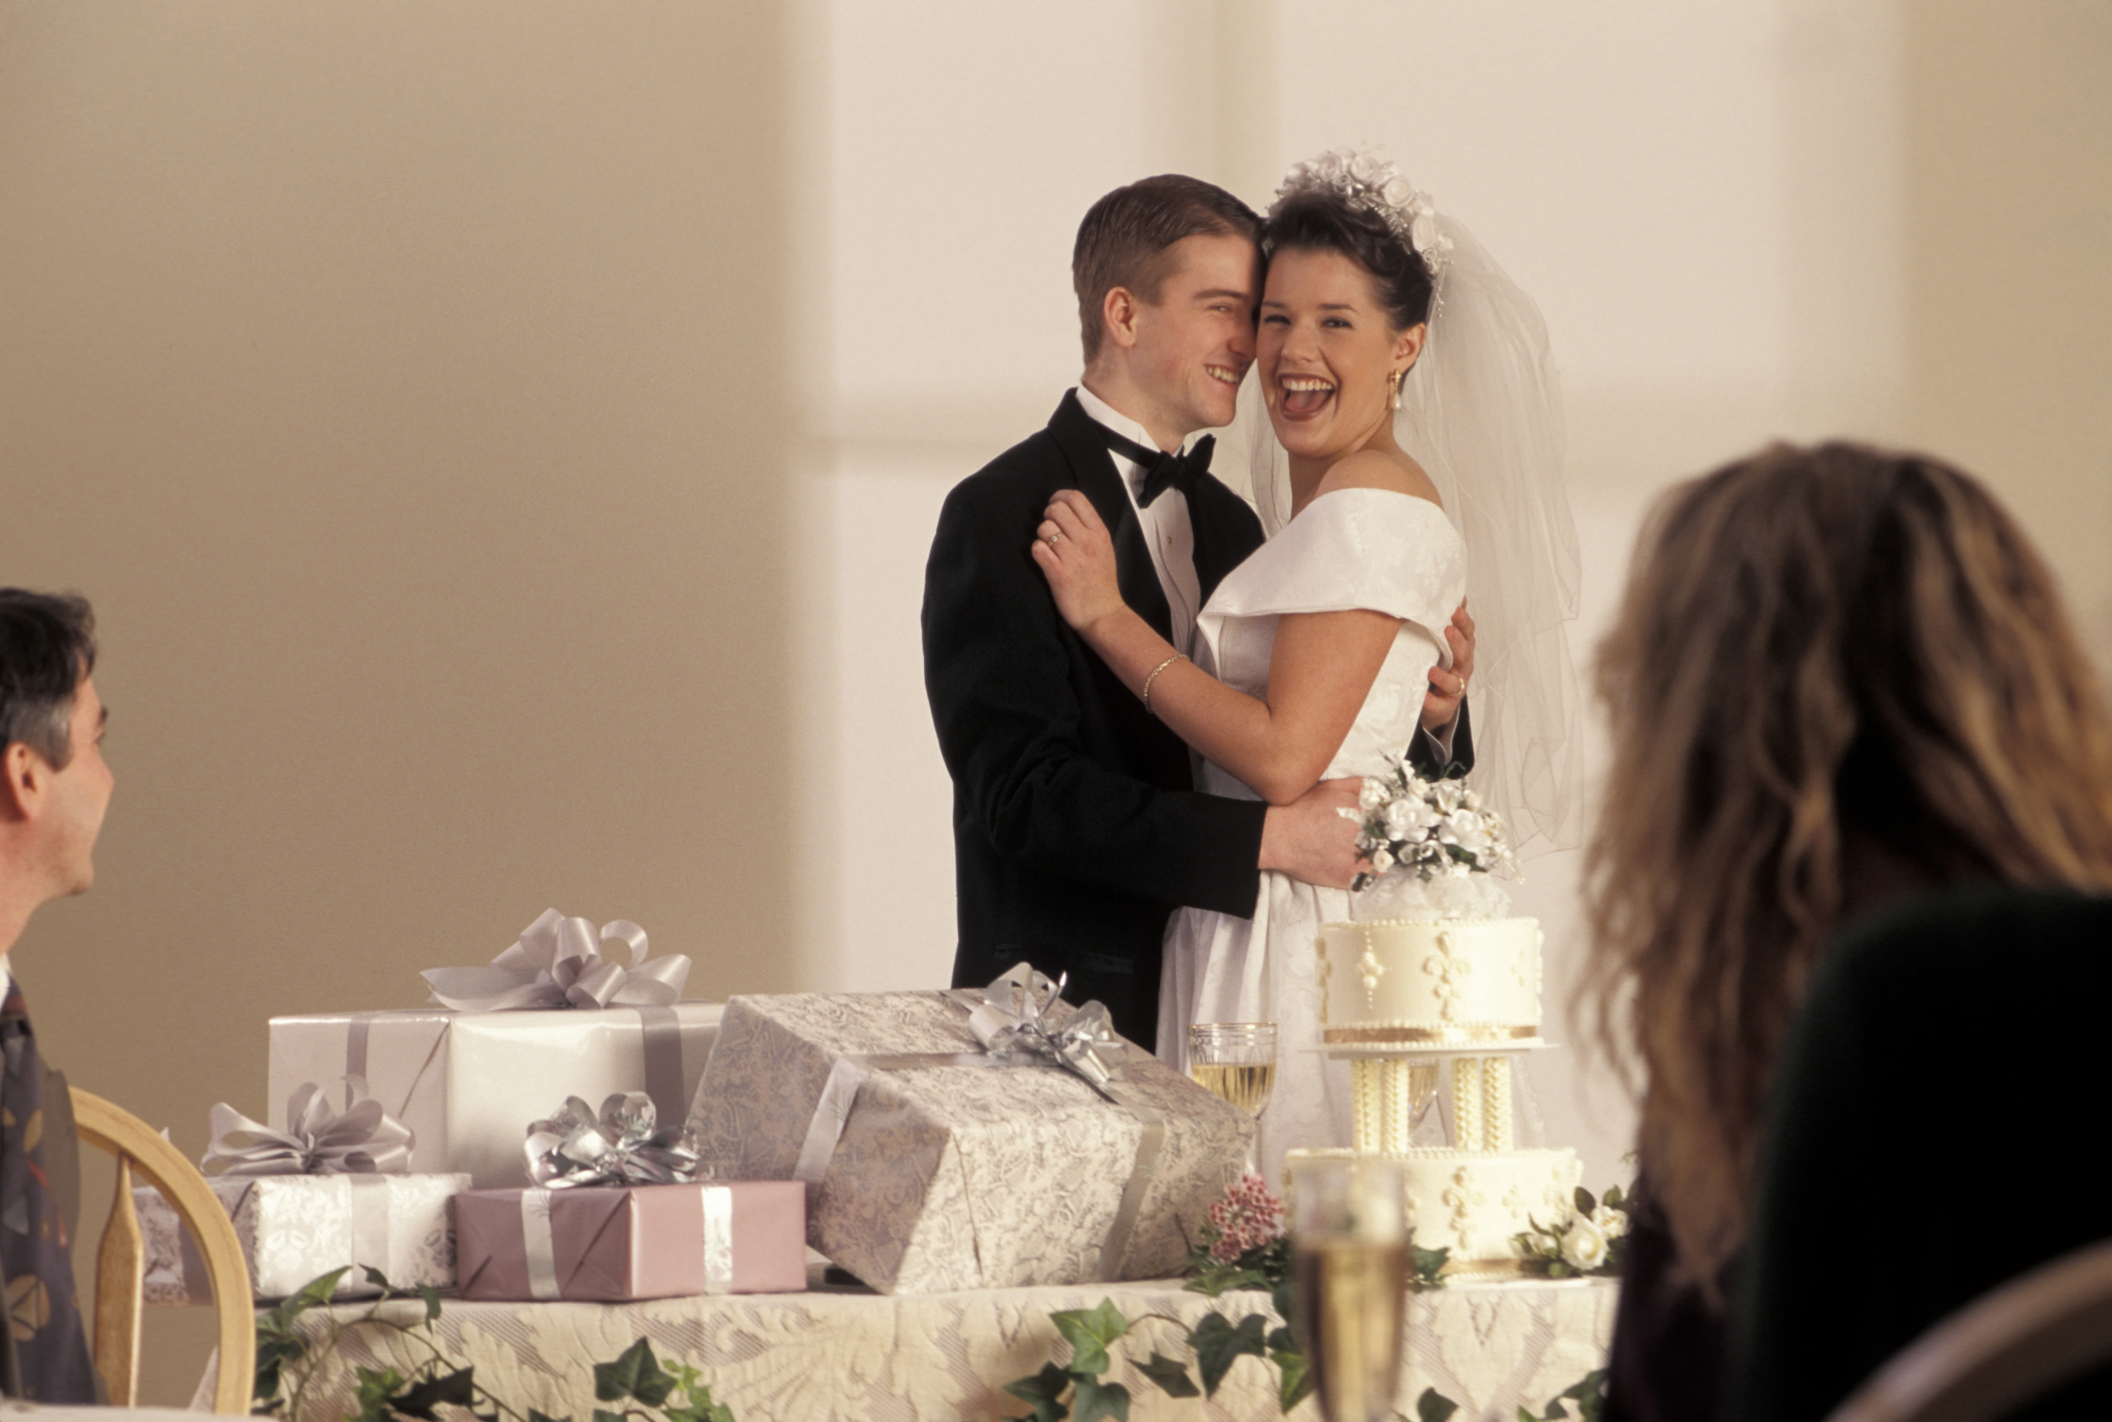 Gifts For Wedding Party Etiquette: Wedding Etiquette For No Gifts In Lieu Of Gifts